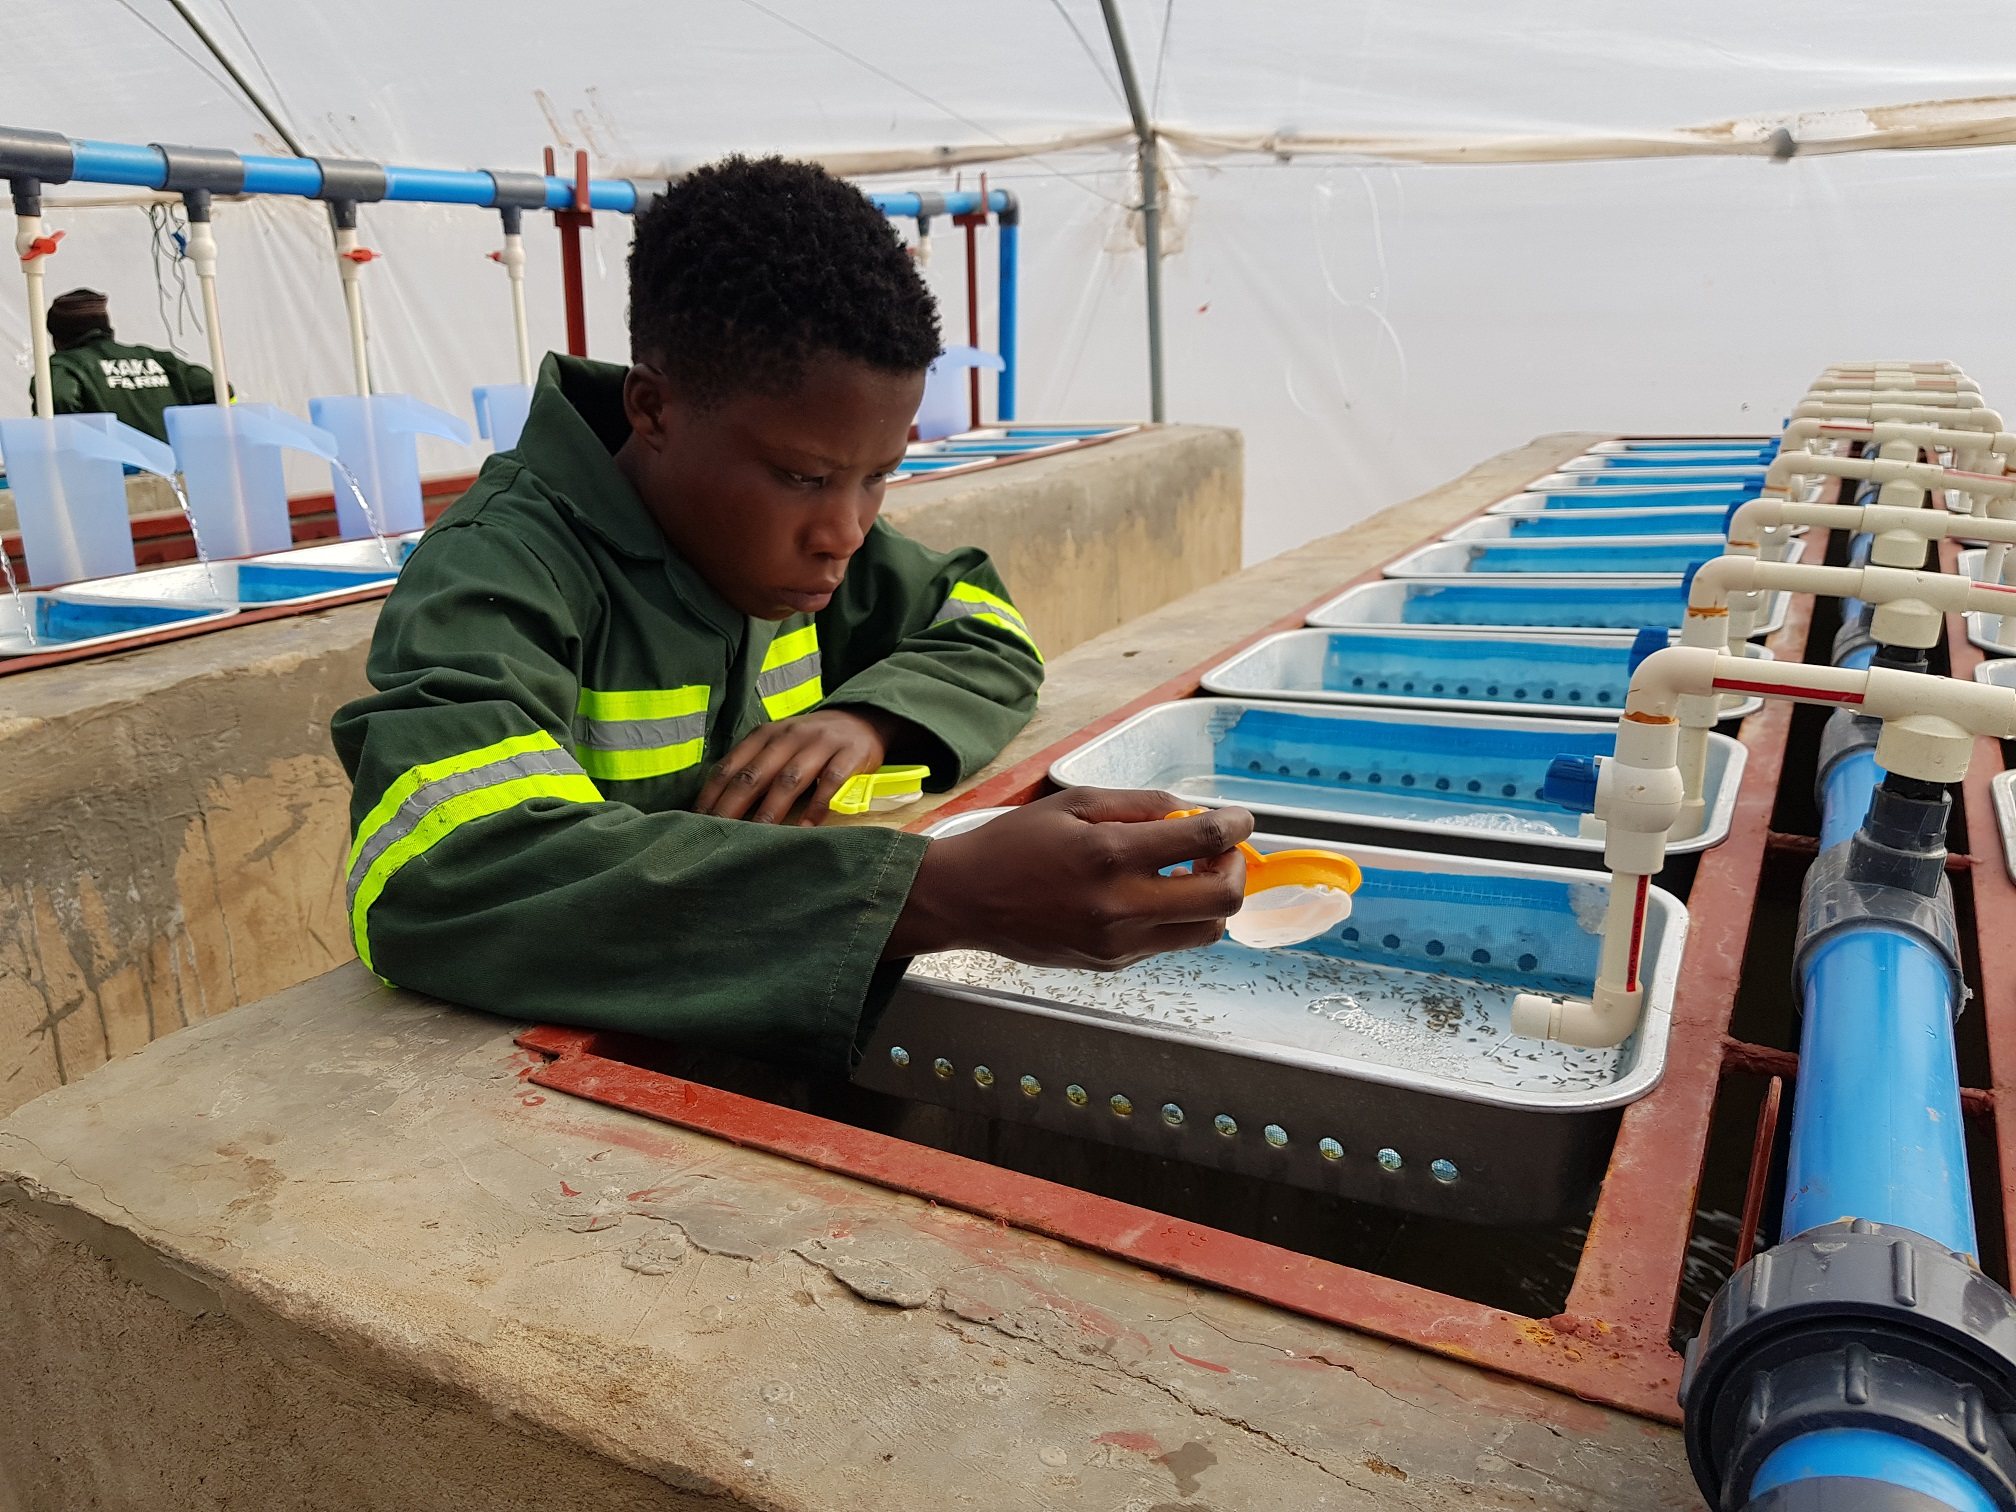 Operations at Palabana Fish Nursery & Hatchery developed under the Aquaculture Seed Fund